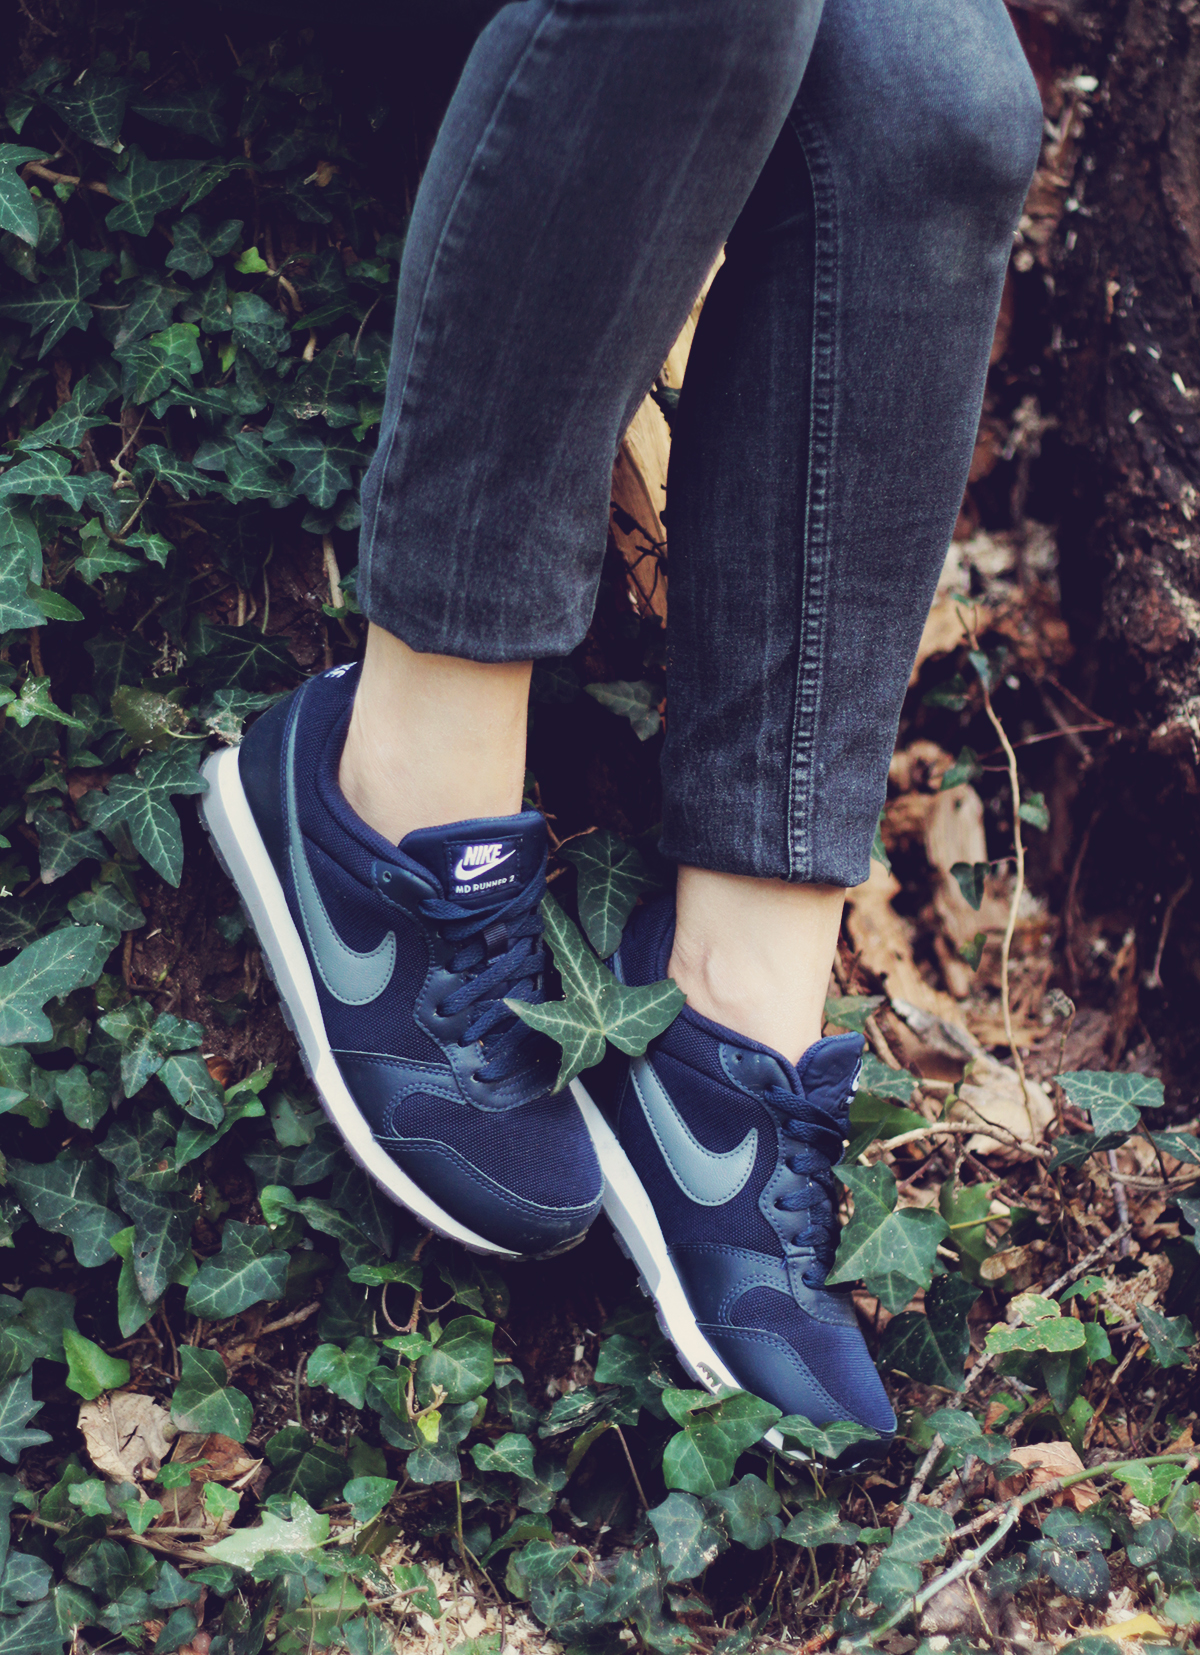 nike runners, jeans